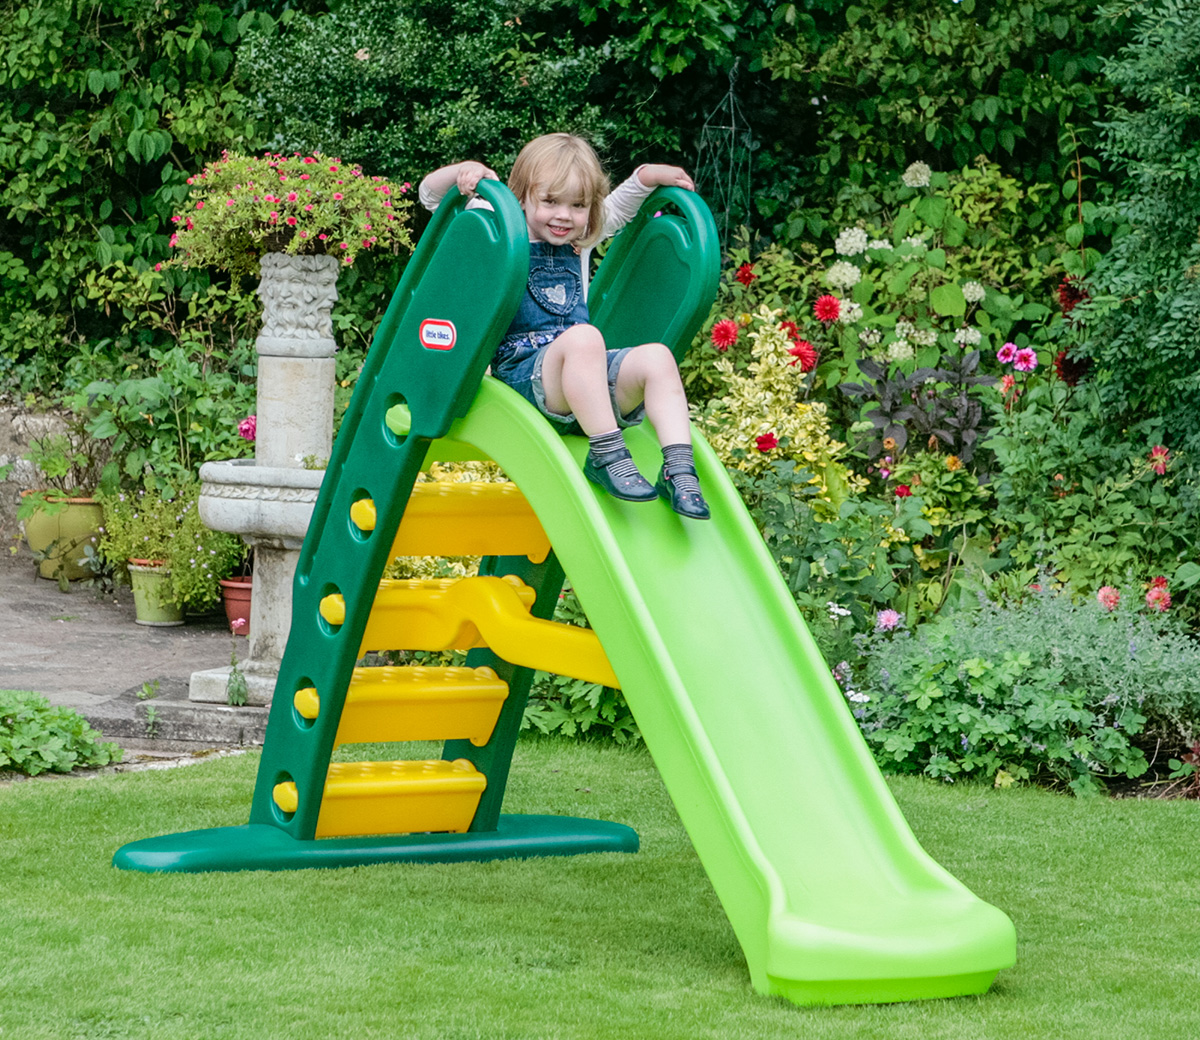 The Little Tikes Easy Store Giant Play Slide features easy steps for climbing, a gentle slope, and a wide base for stability. Set this slide in your backyard and let your little one enjoy the fun of /5(10).